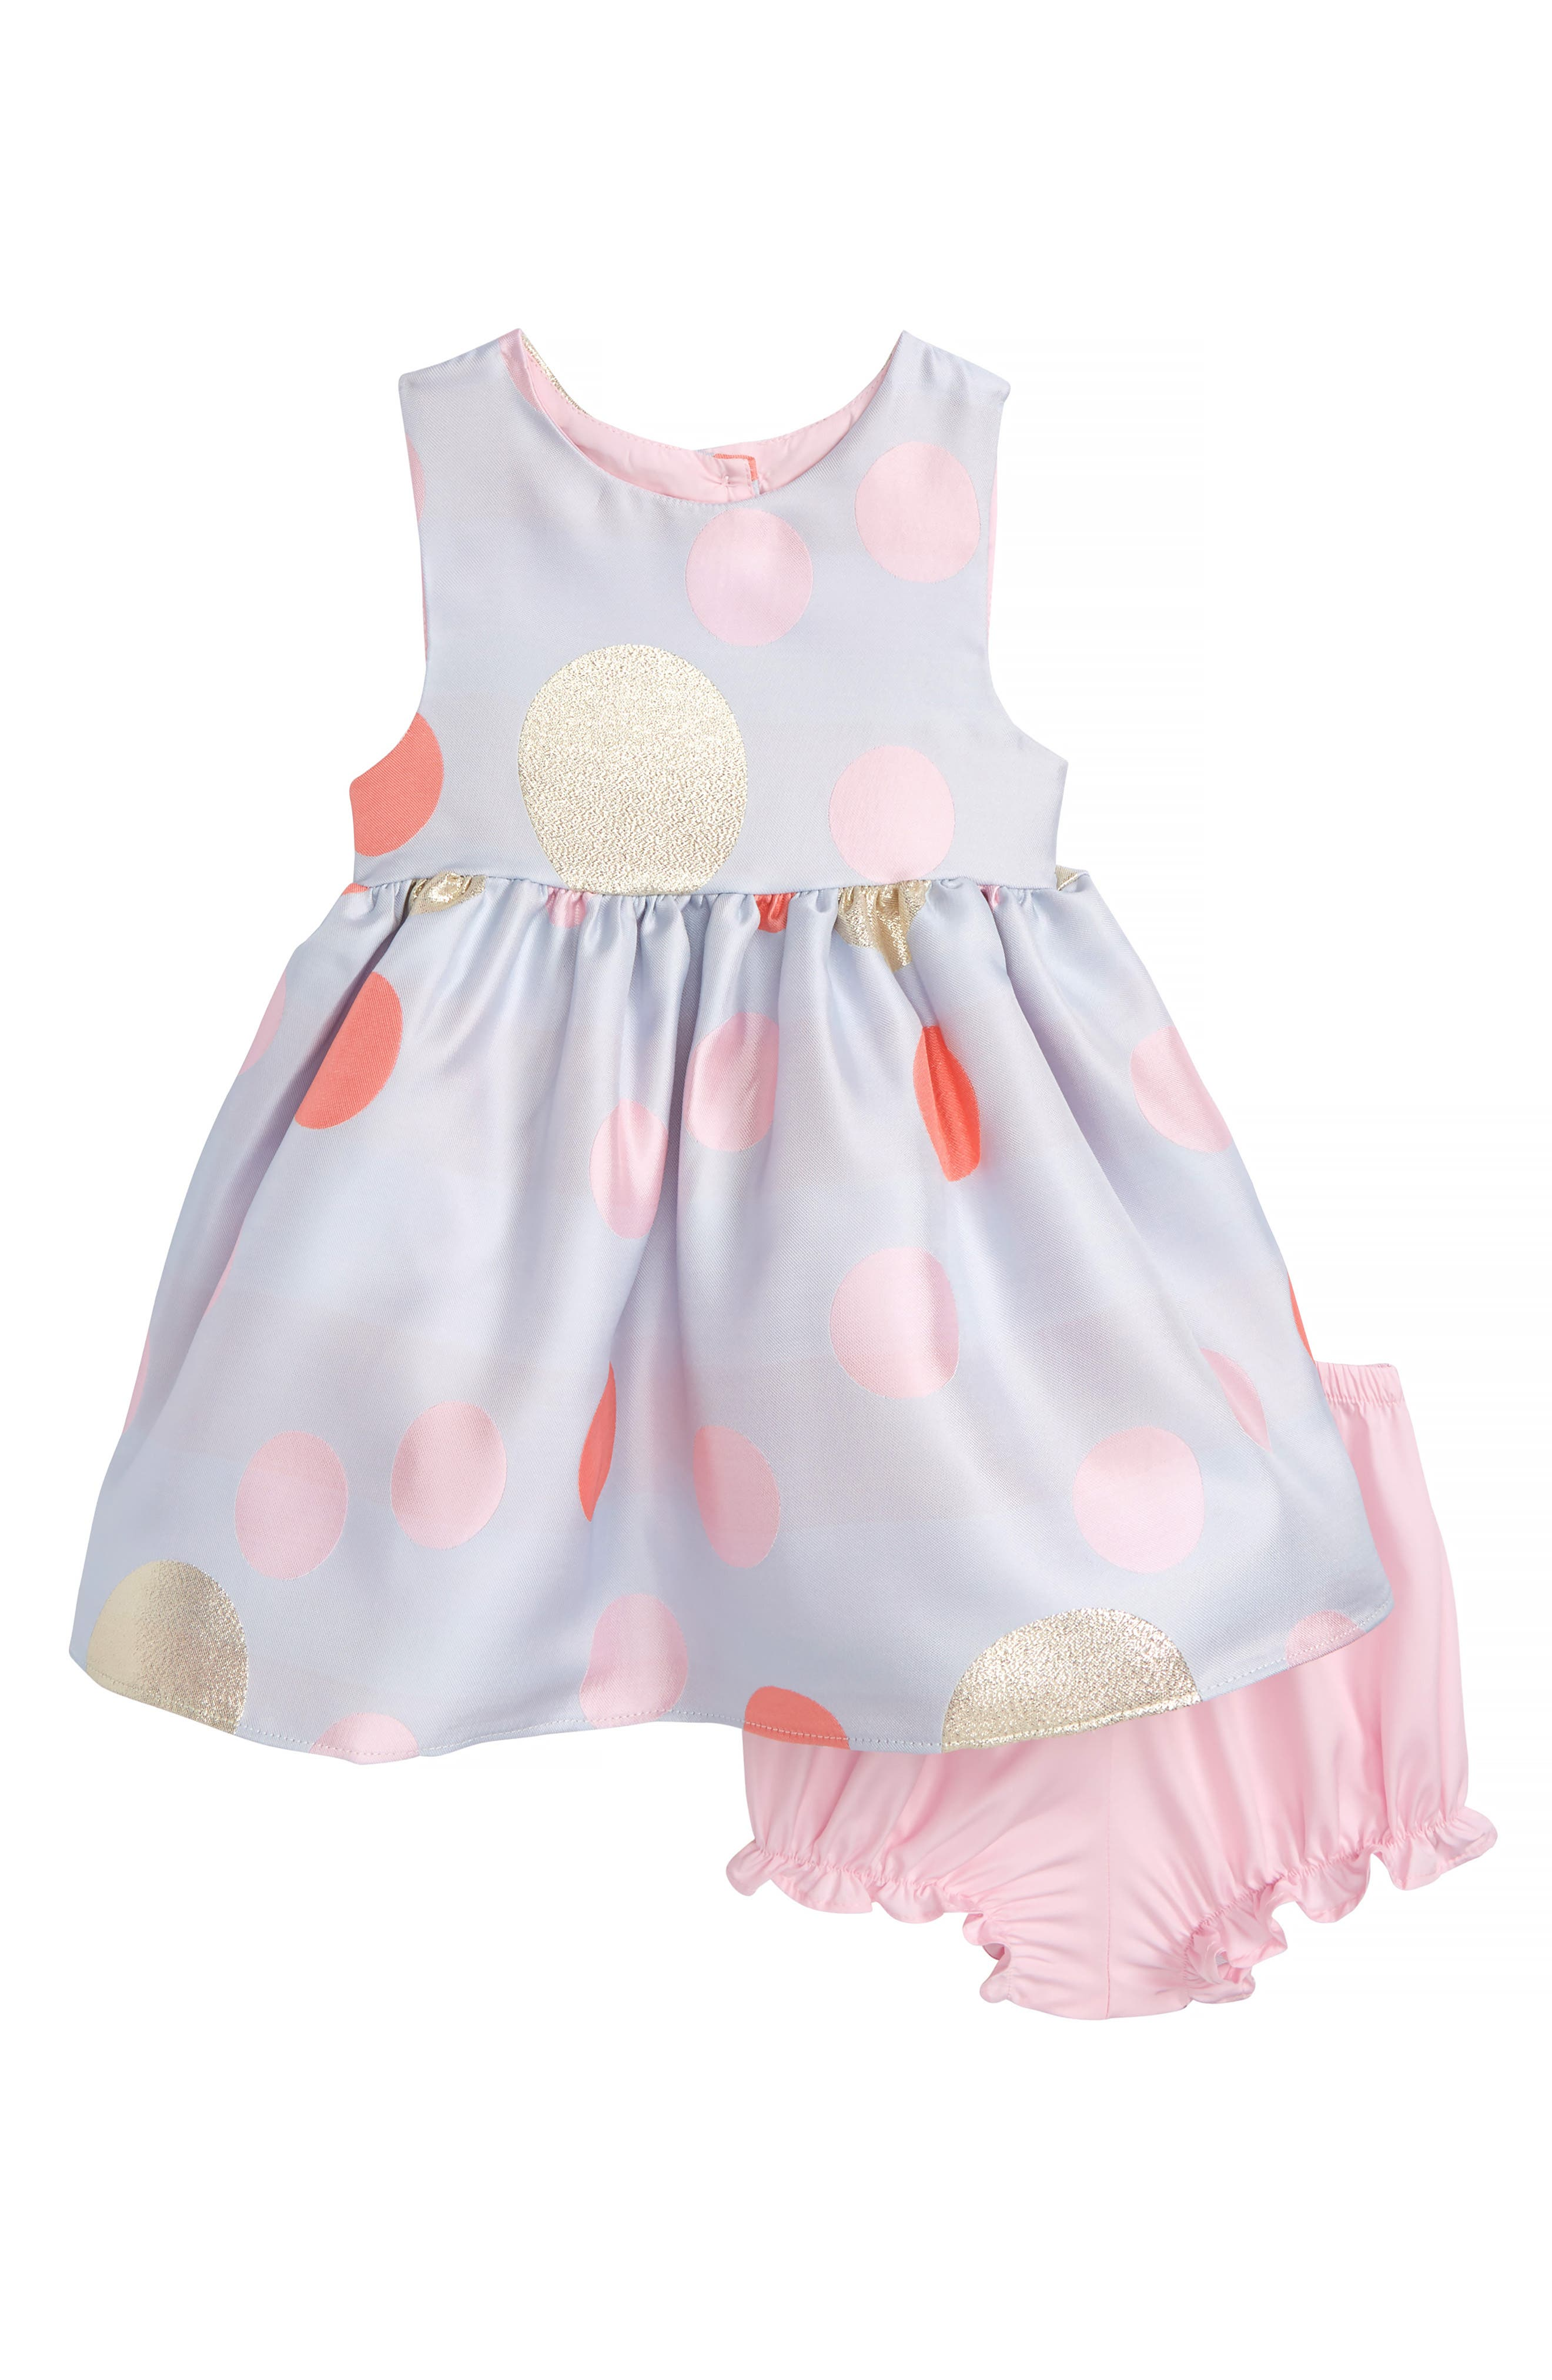 Main Image - Frais Metallic Jacquard Polka Dot Party Dress (Baby Girls)